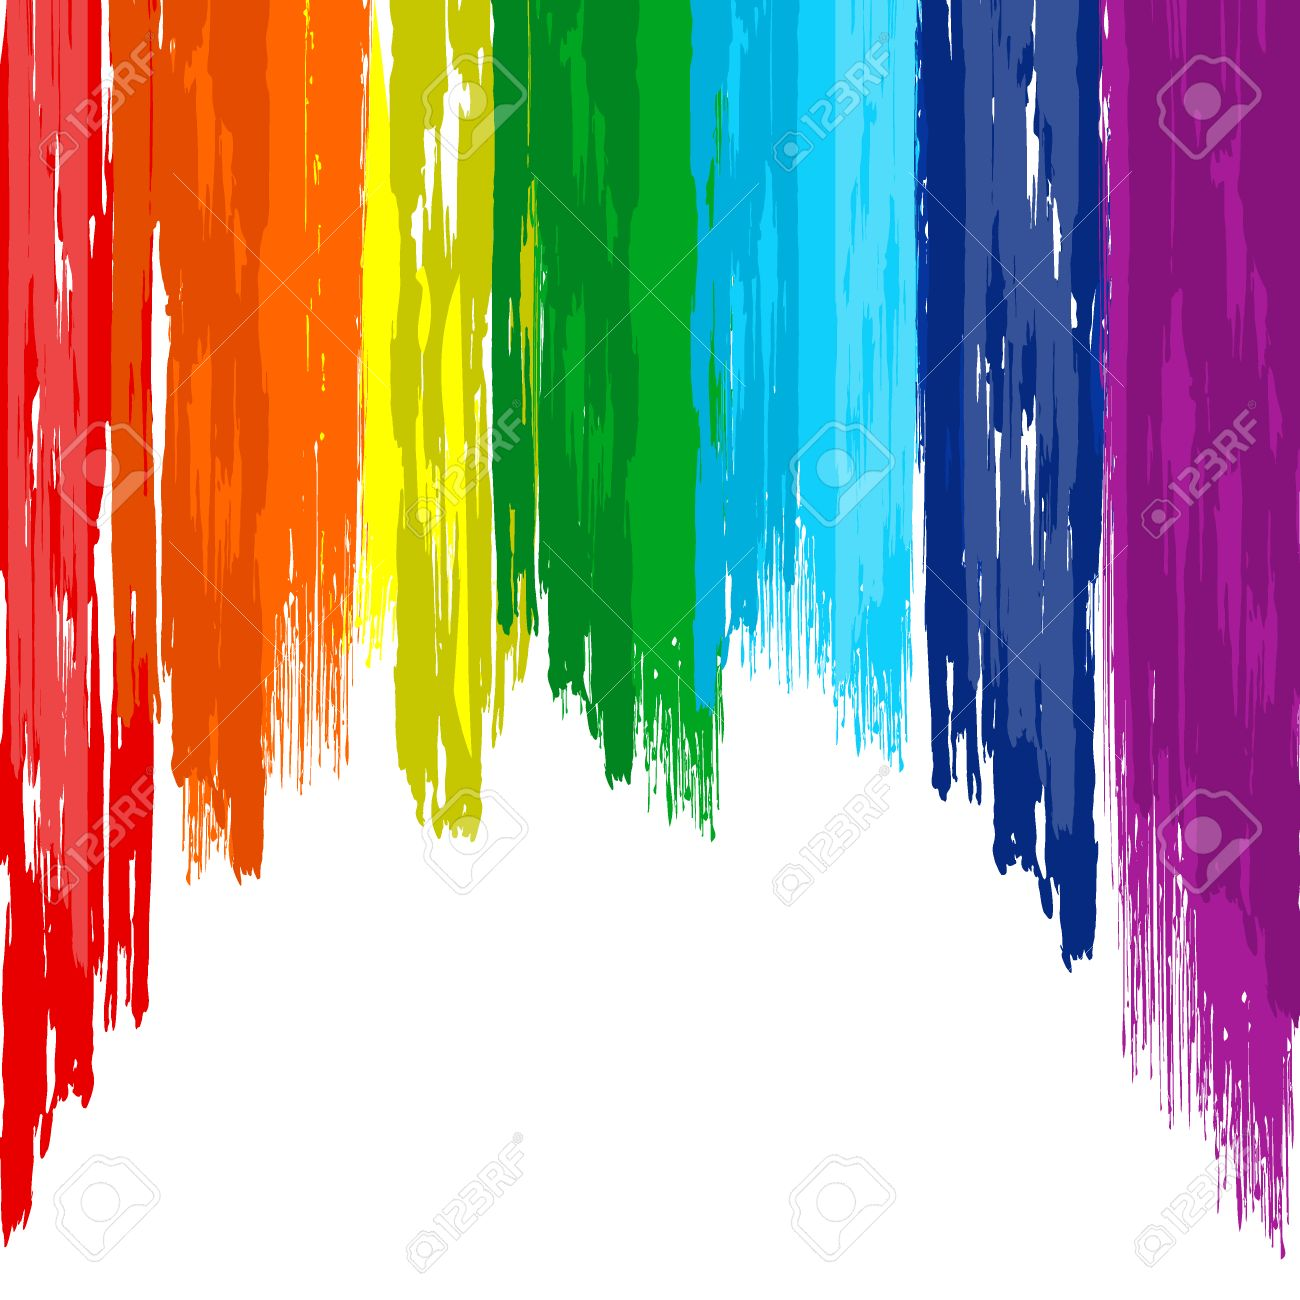 art rainbow brush stroke abstract color background royalty free